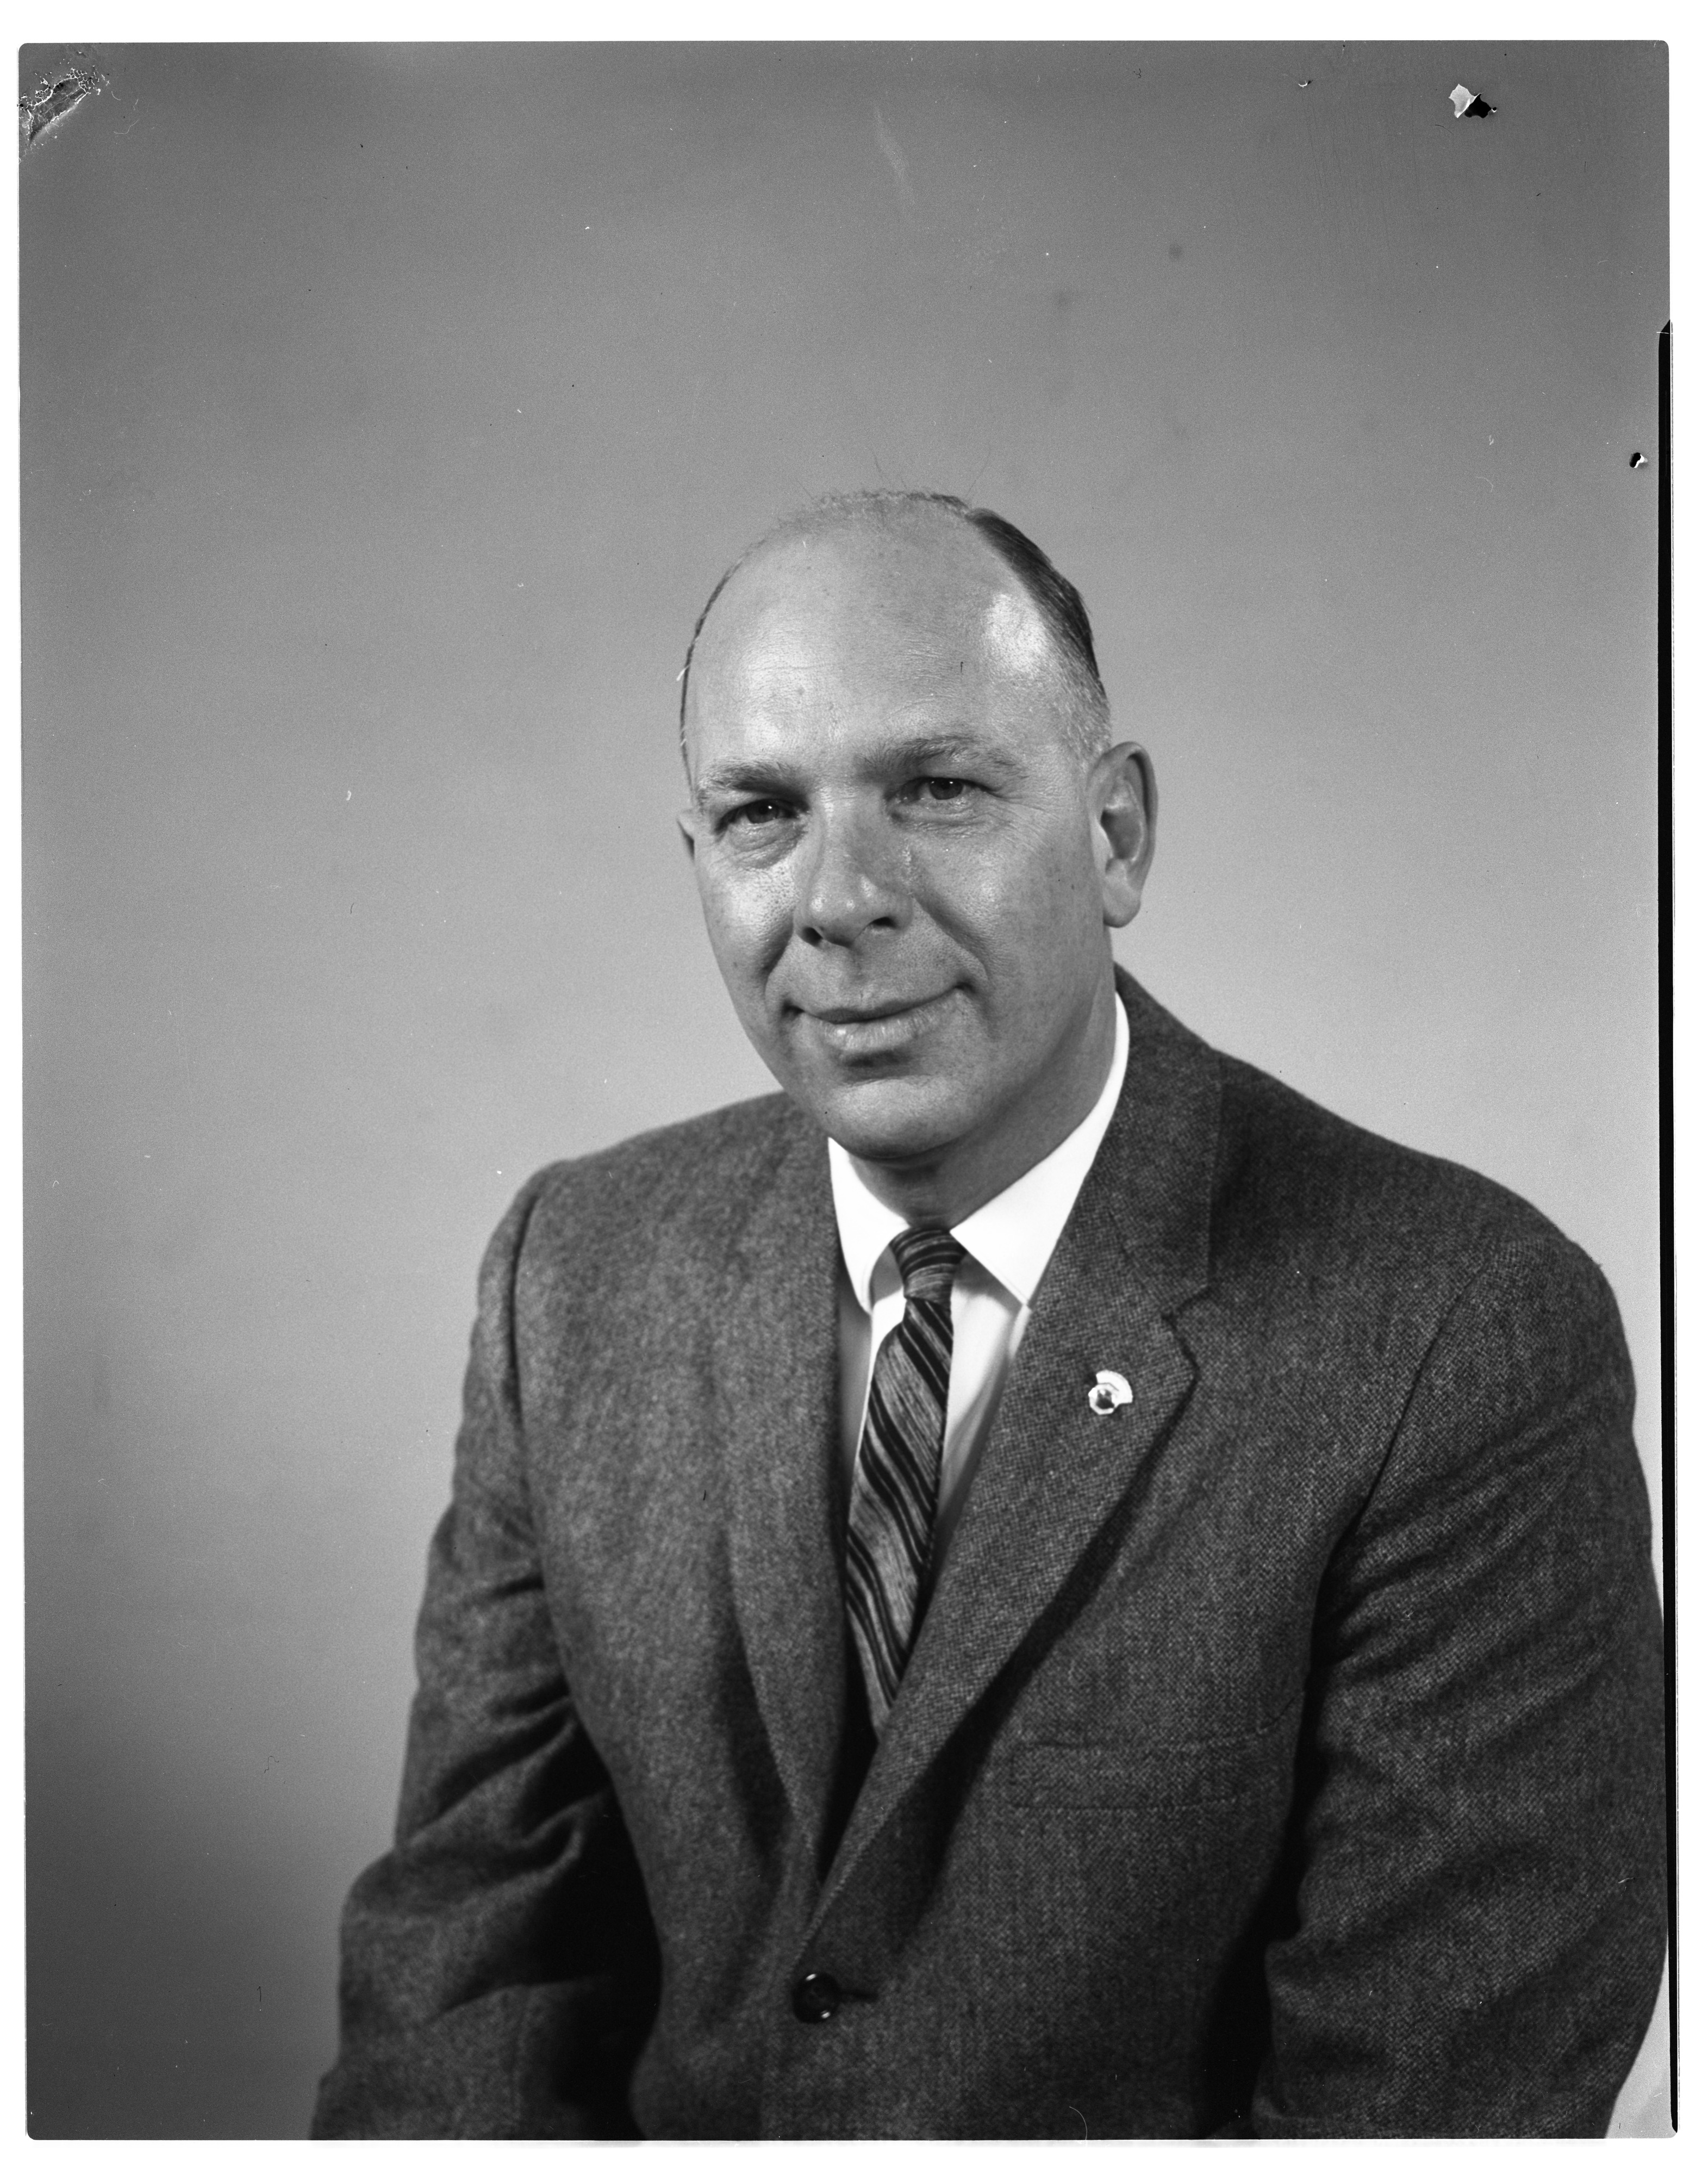 Alfred O. Toney, Manager of Beer Vault, Elected President of Noon Optimist Club, April 1959 image